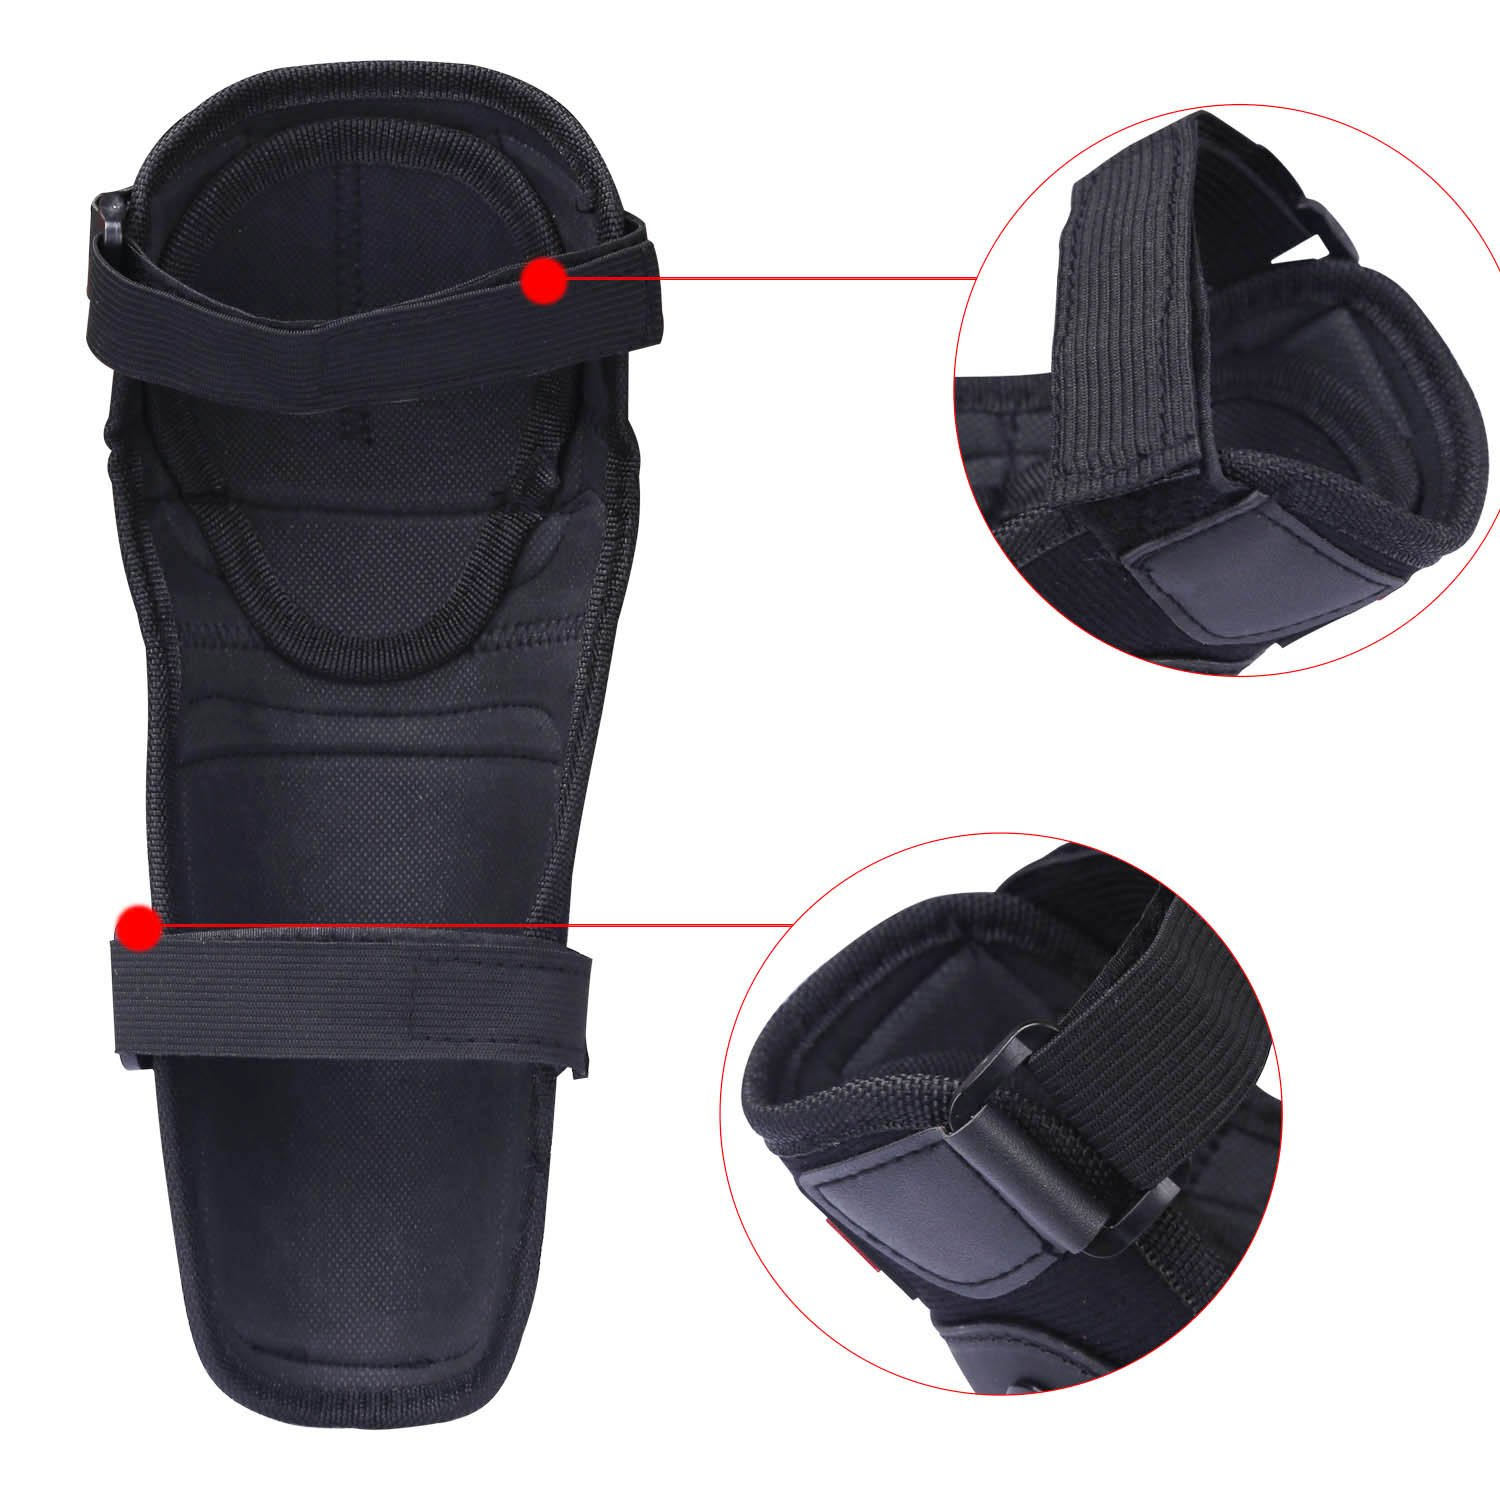 Tera 4PCs Elbow Knee Shin Armor Protect Guard Pads for Motorcycle